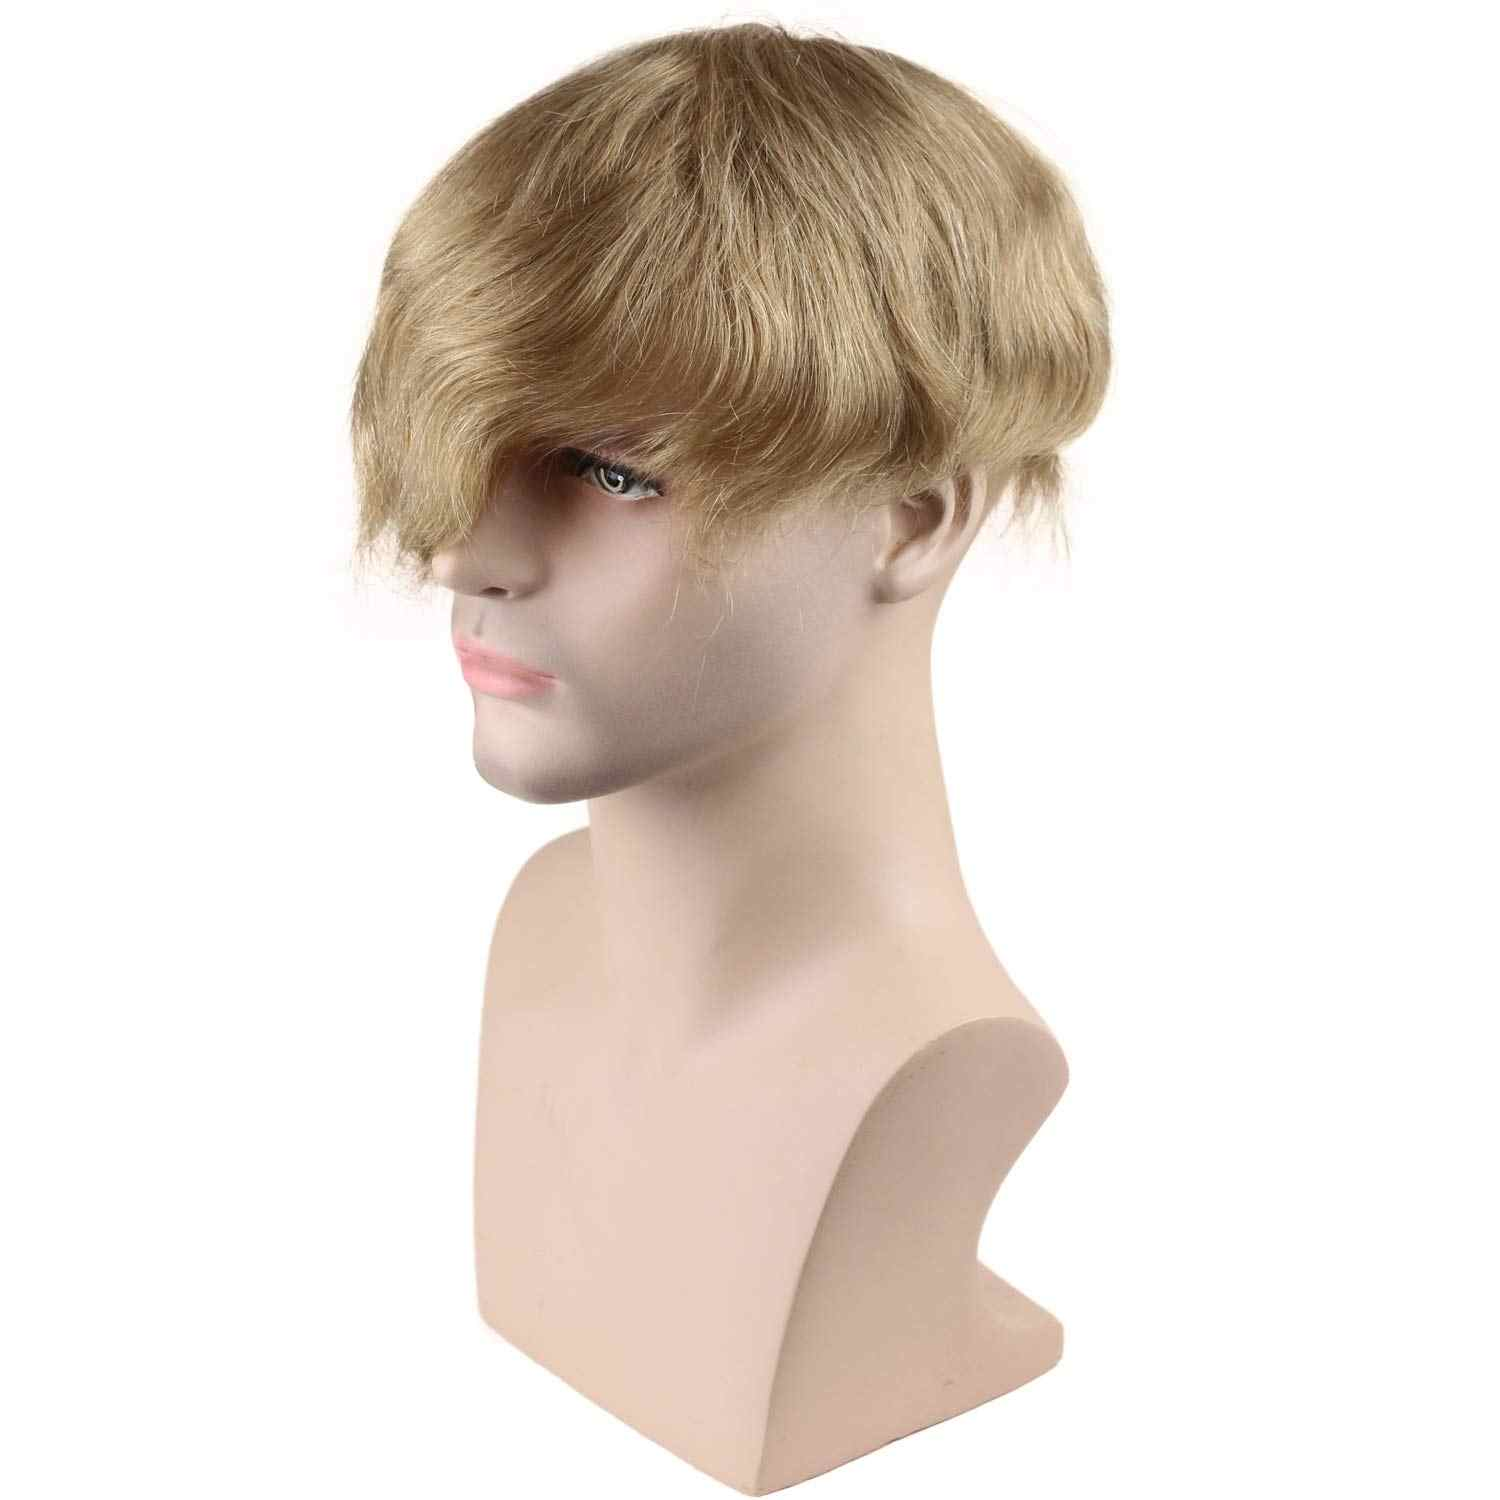 Men's Toupee Swiss Mono Lace Thin Skin Hairpiece wigs Replacement System for Men #21 Ash Blonde Color European Human Hair 10x8""